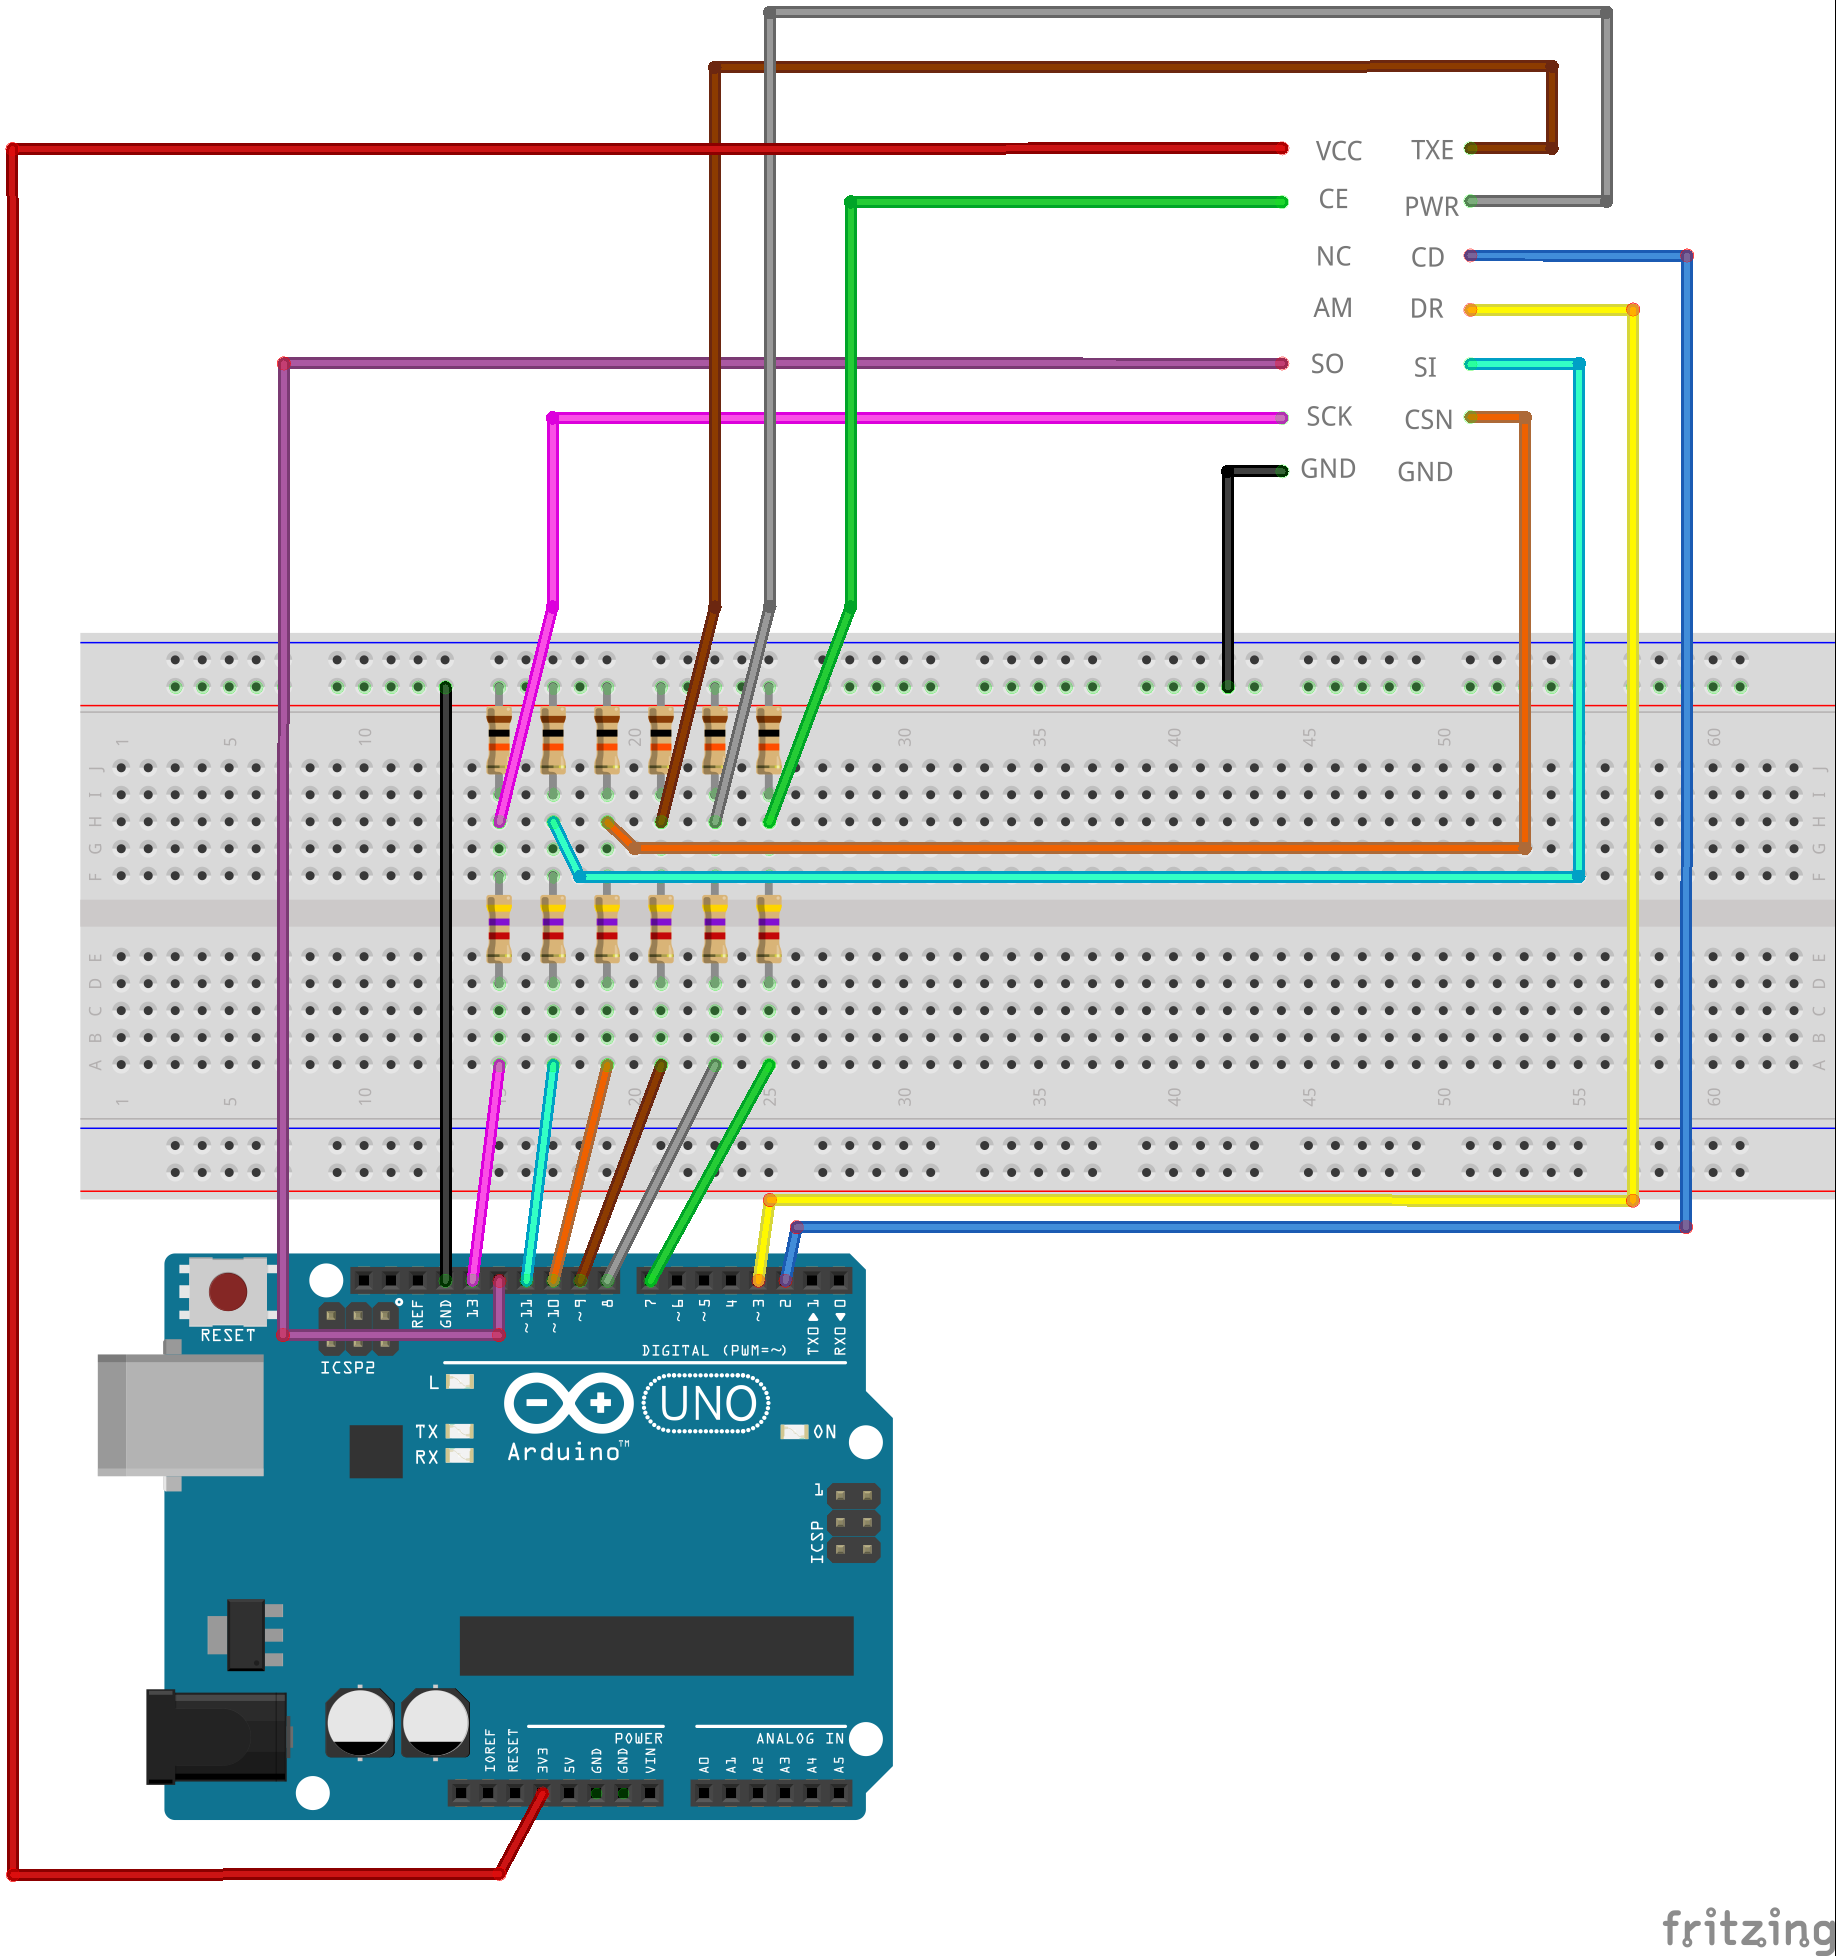 NRF24L01 with Arduino - Response Timed Out - The